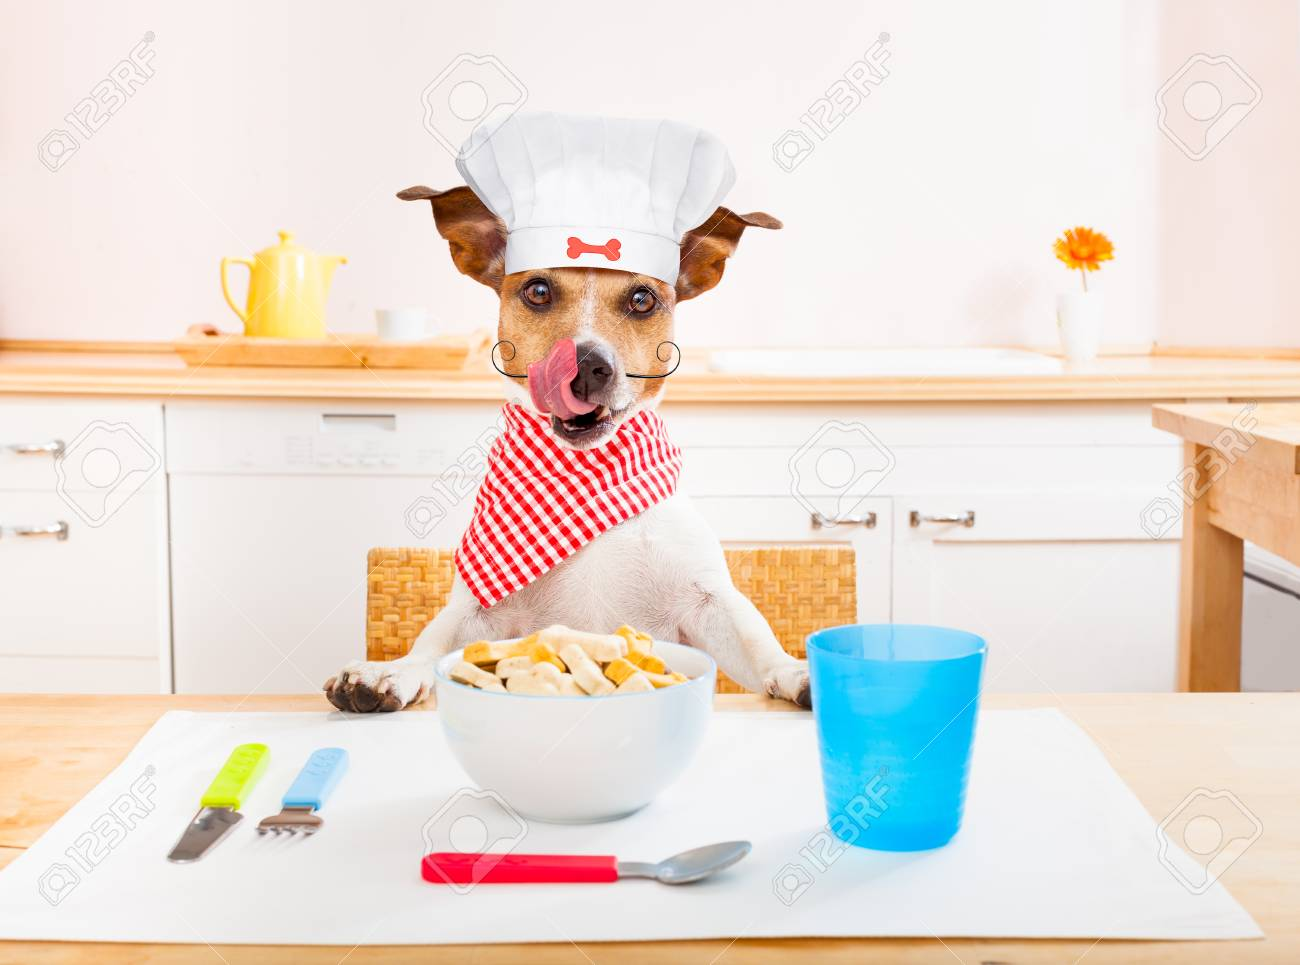 Funny Hungry Jack Russell Dog In Kitchen Cooking Or Eating On ...